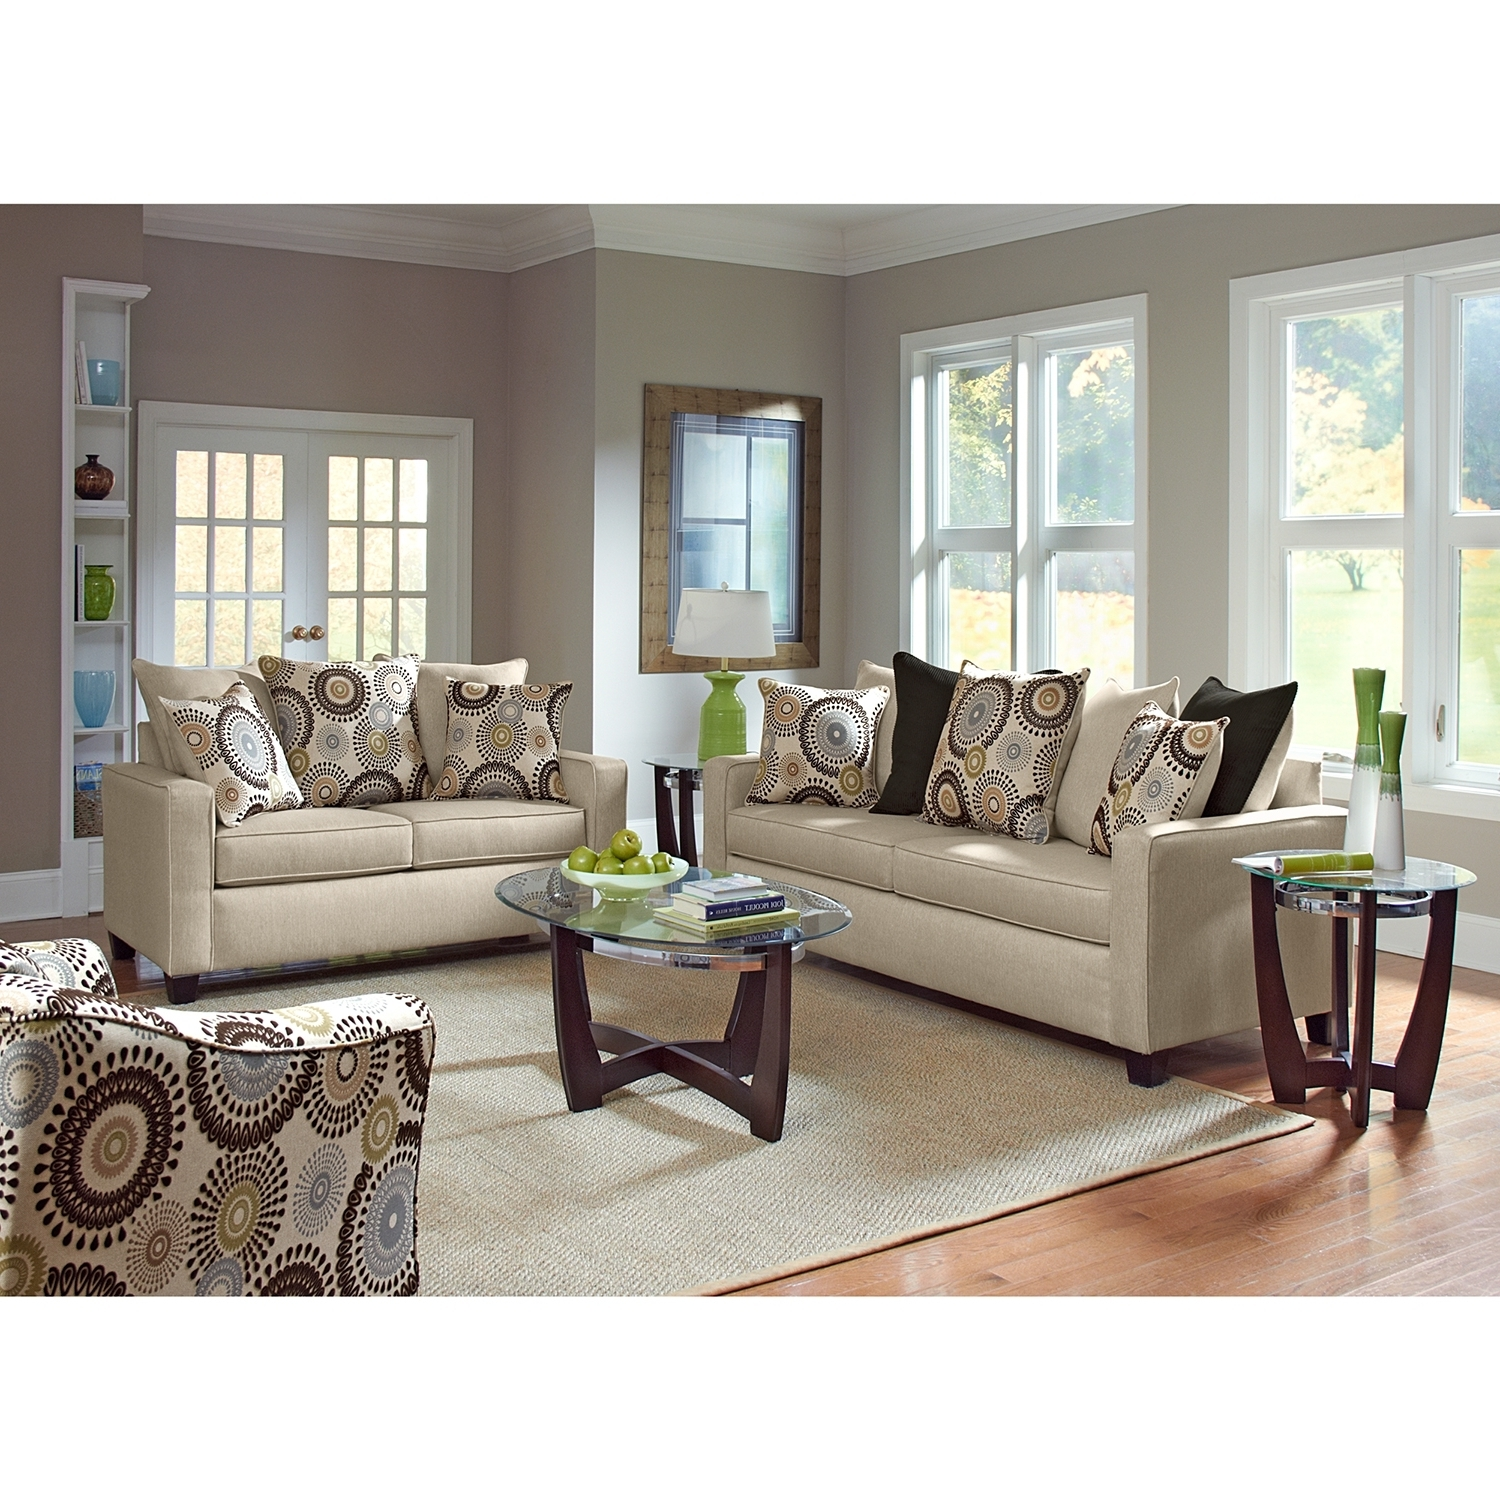 Most Current Value City Sofas For Livingroom : Value City Furniture Living Room Chairs Tables Sofas (View 4 of 15)